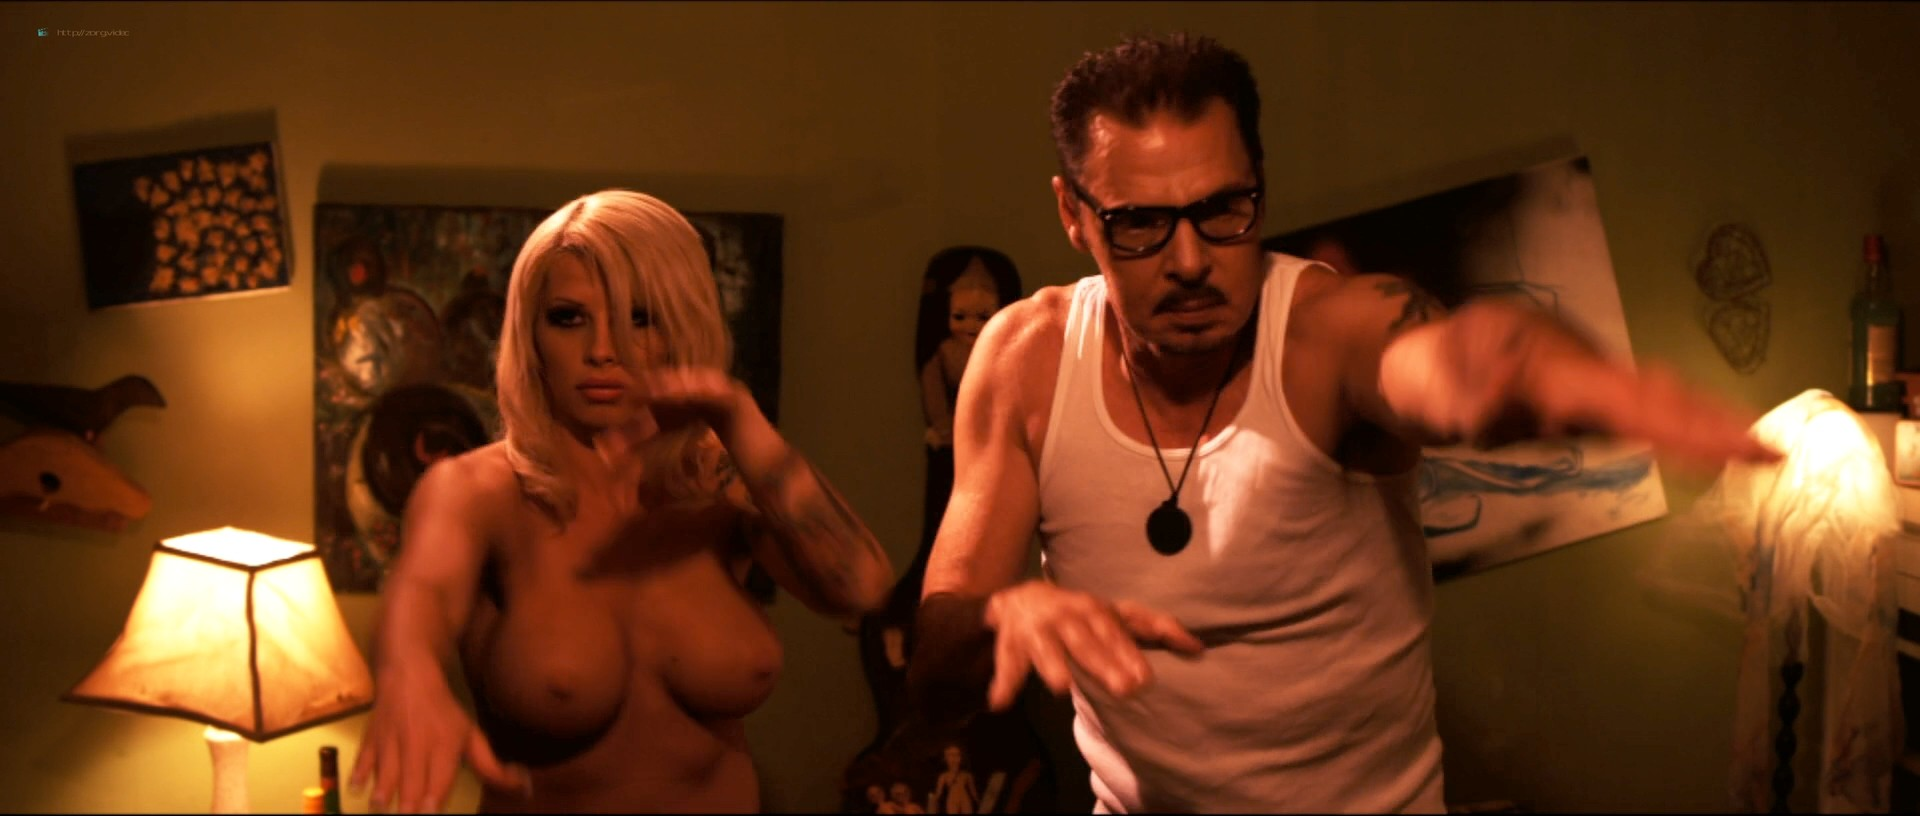 Kayden Kross nude and sex Nicole D'Angelo, Brooke Haven and others nude too - Blue Dream (2013) 1080p (15)